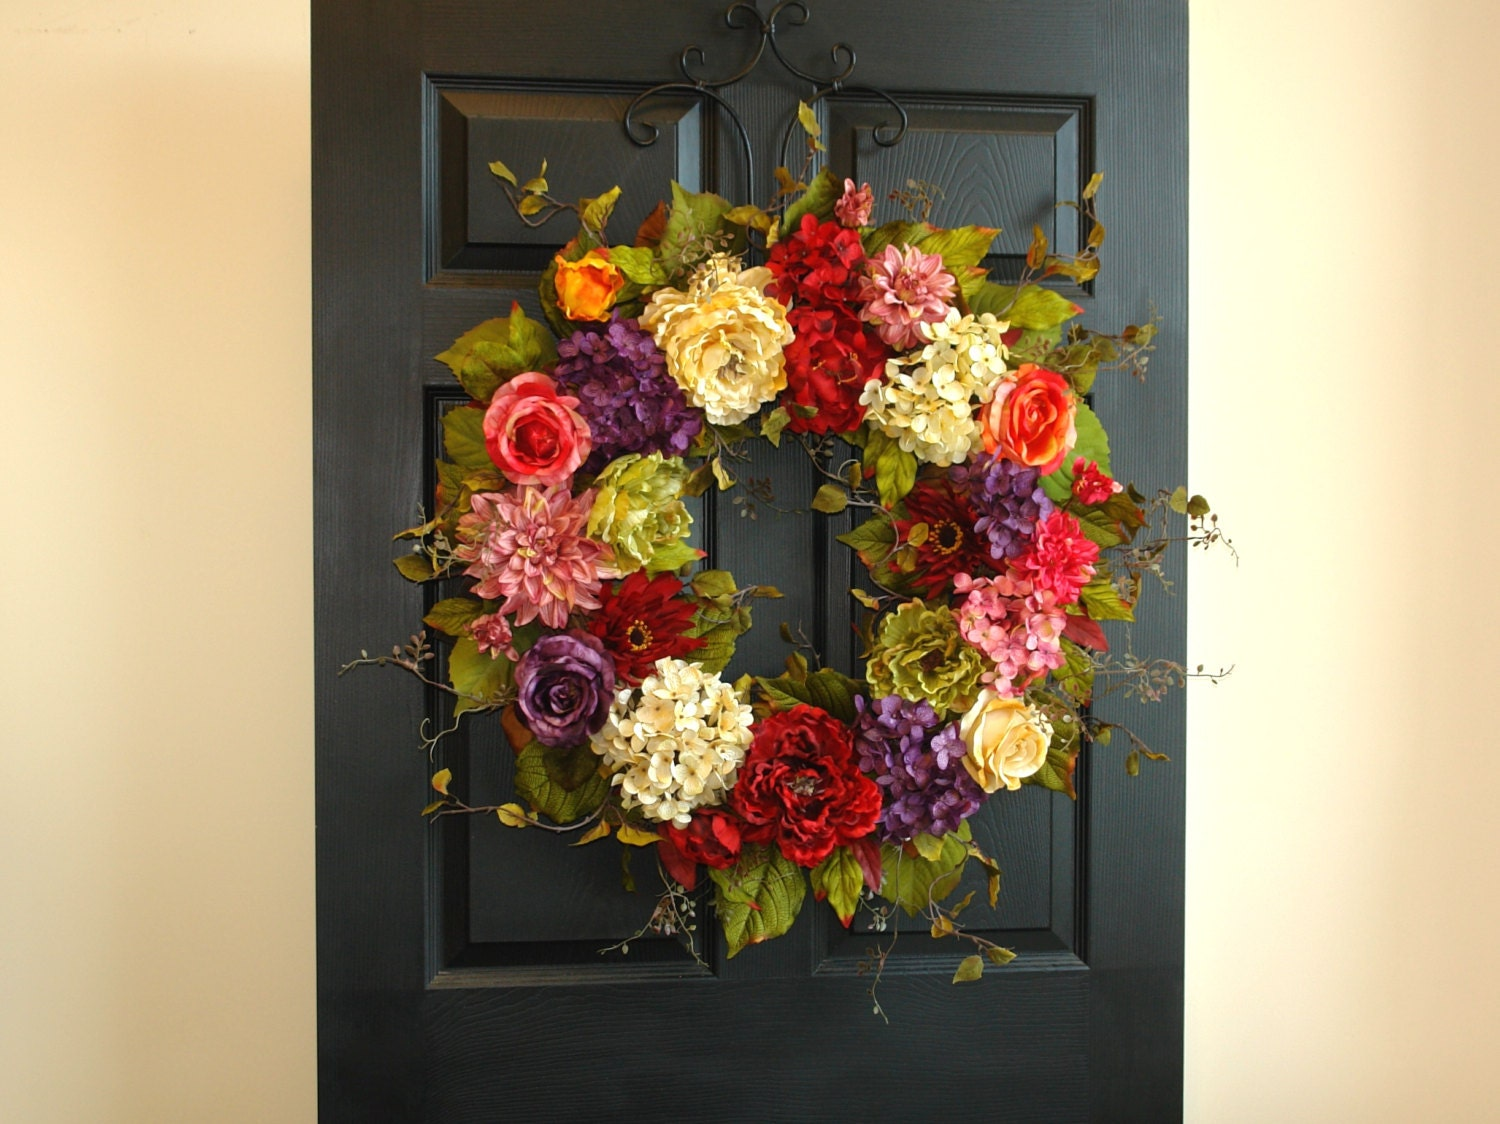 Spring wreaths for front door wreaths summer decorations for 3 wreath door decoration